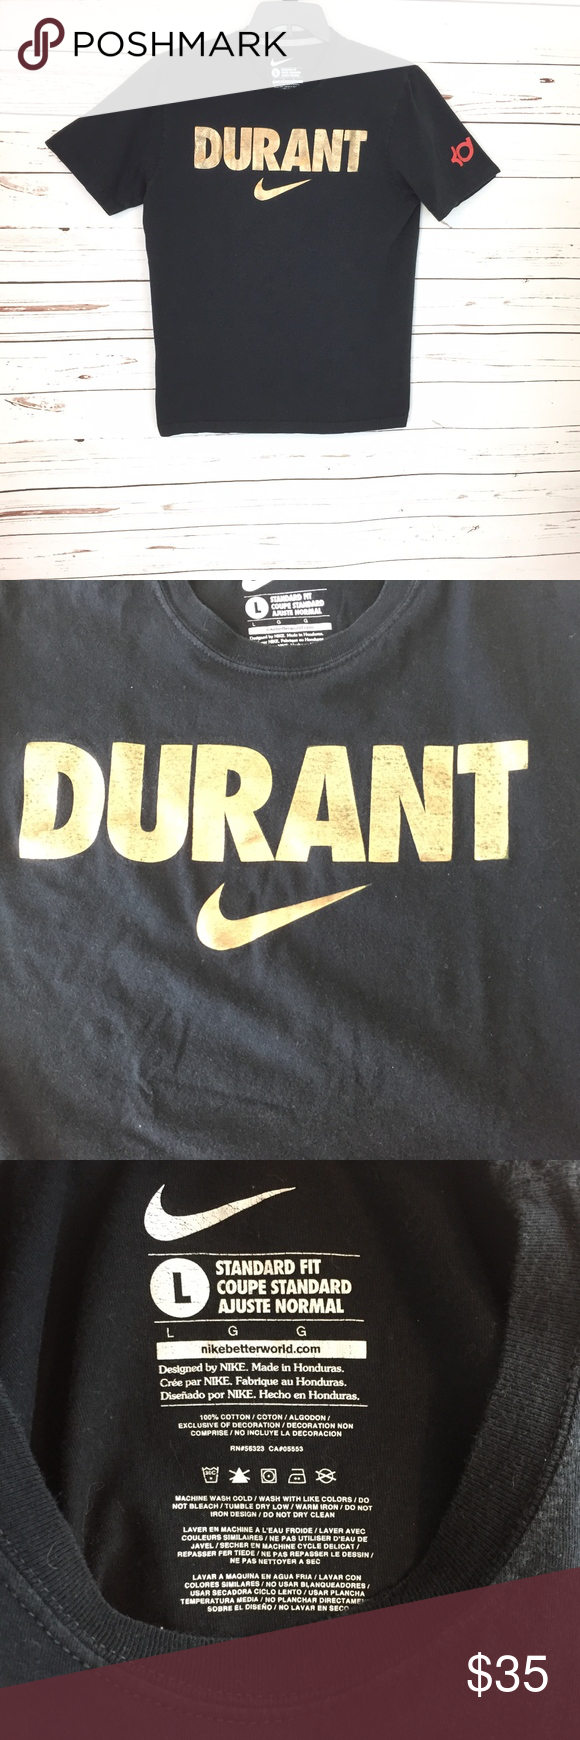 0df6abdab0 Nike Gold Swish Basketball Kevin Durant TShirt 167 Nike Men L Gold Swish  Basketball Kevin Durant